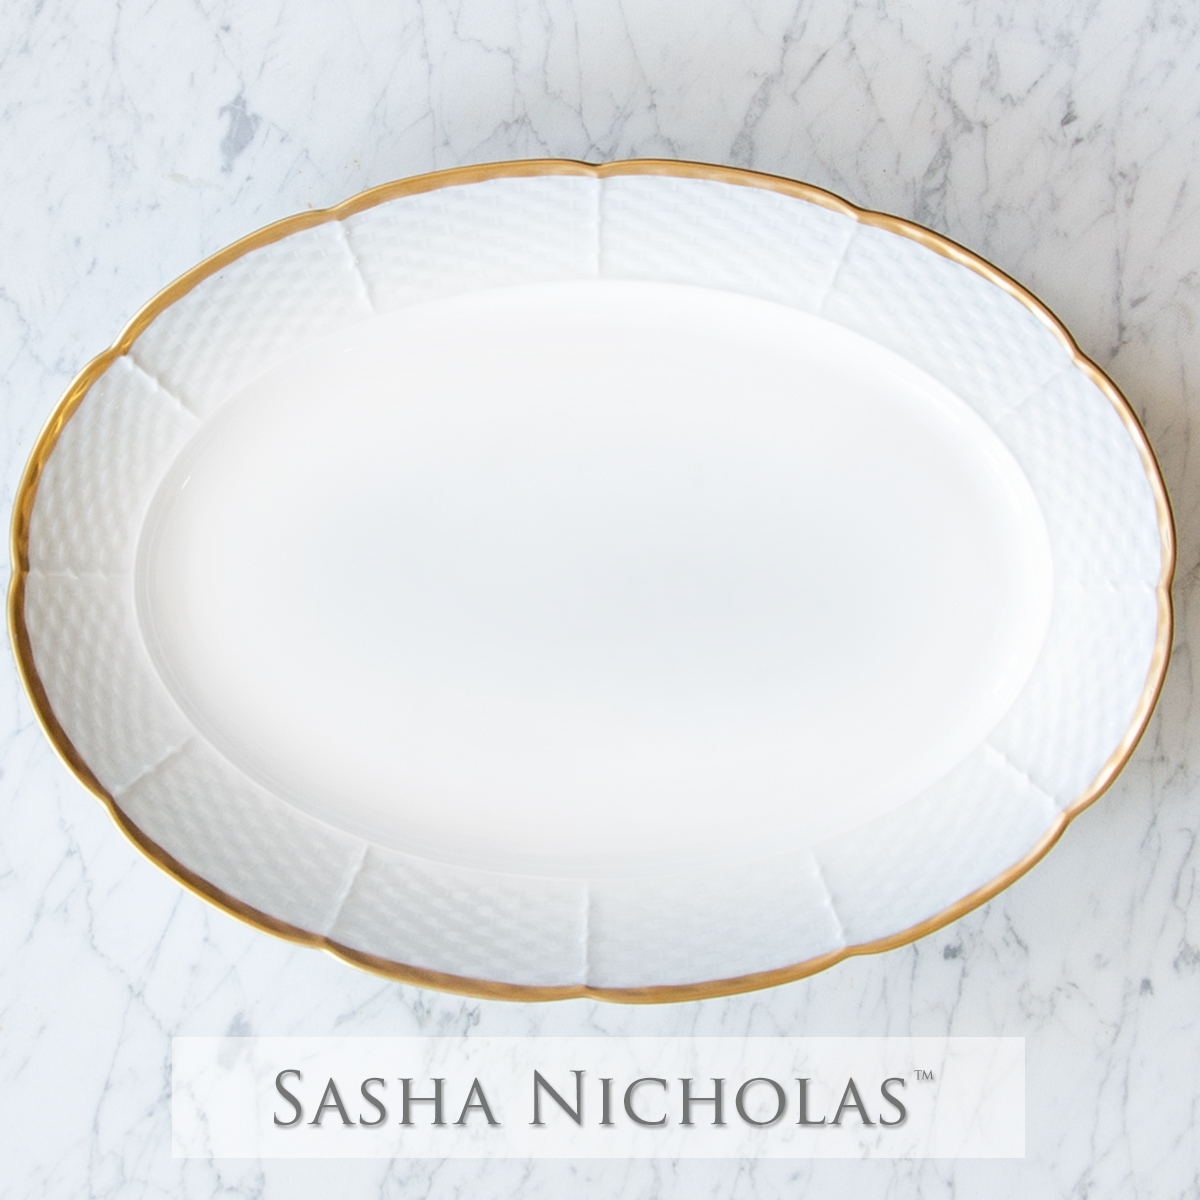 A beautiful addition to your dinnerware collection and to adorn your tablescapes with. It makes the perfect gift for your wedding registry with the included inscription on back. Choose from their signature font styles or use a custom monogram or crest of your choice! The 24K gold rim is quite stunning. | Sasha NicholasŒŠí_ŒÈs white porcelain 24K gold oval platter